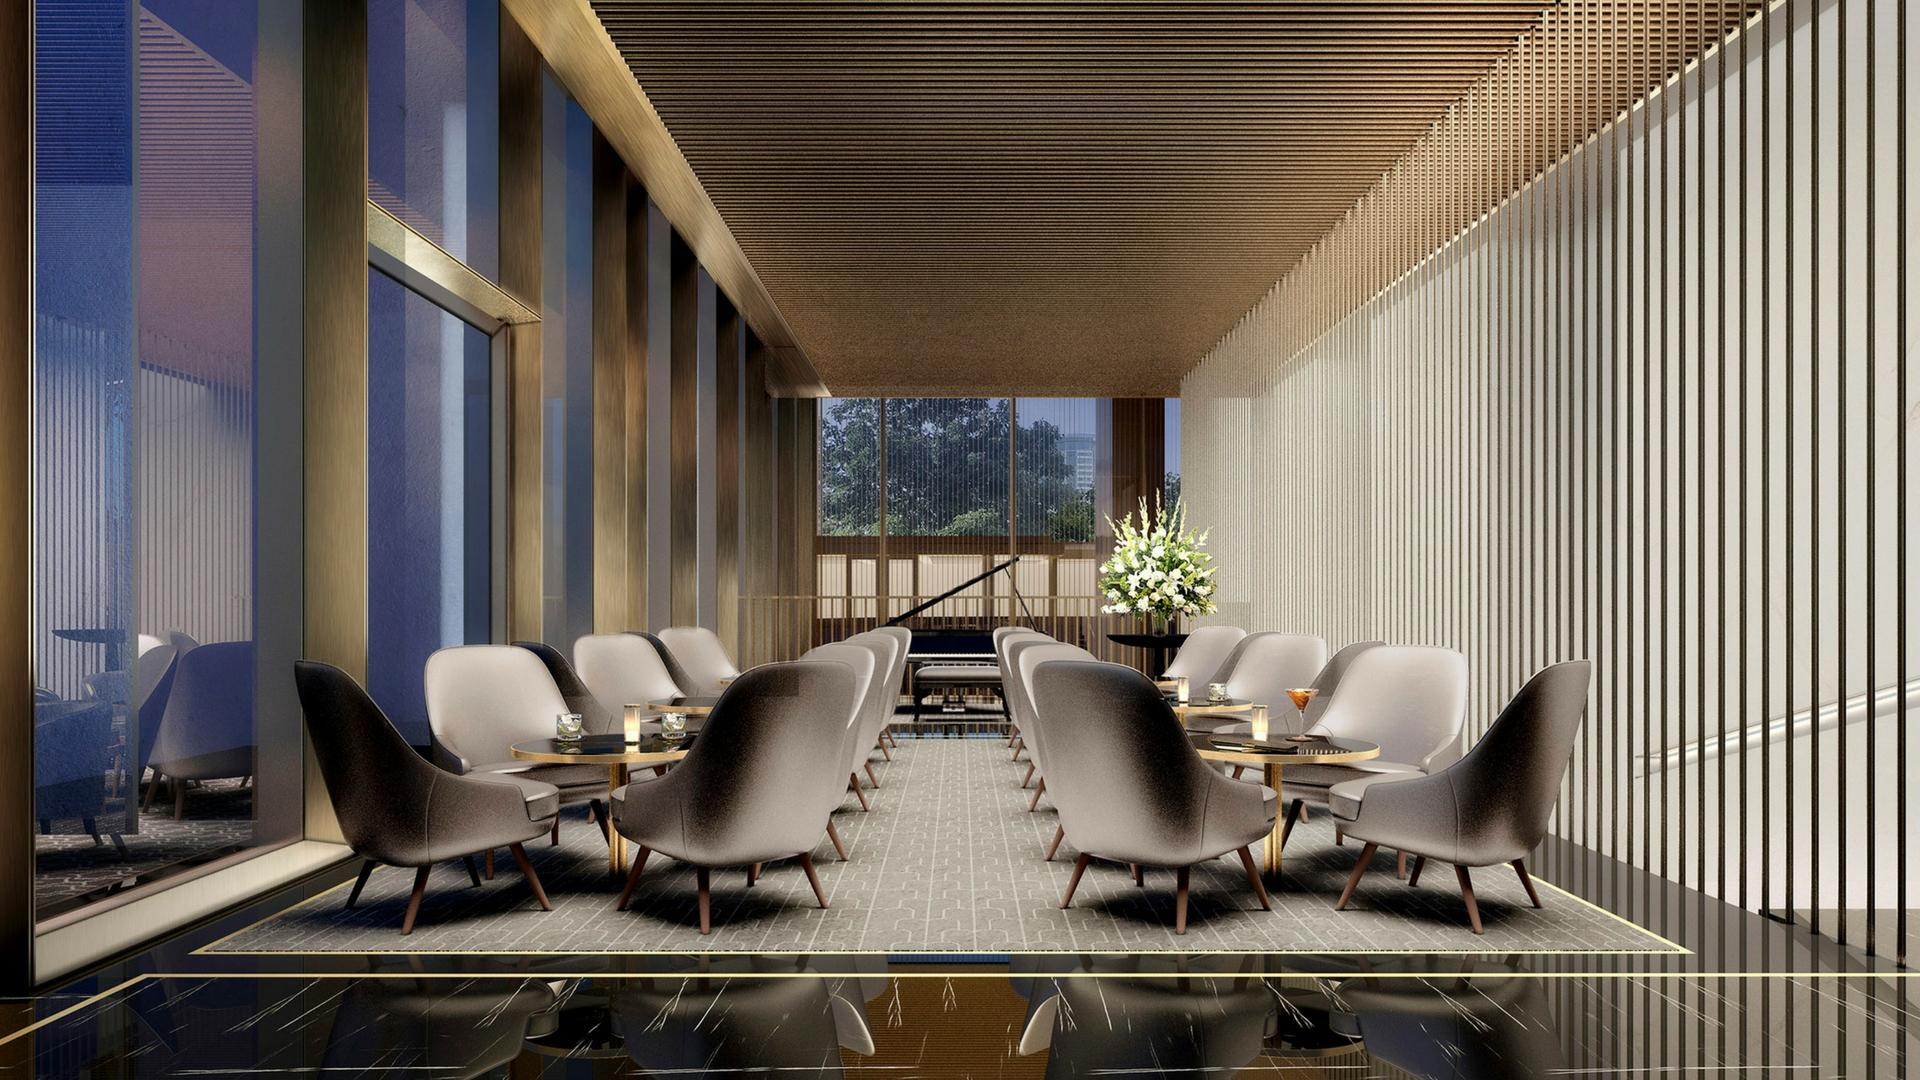 TheMurrayHongKong_Restaurant and Bar - Garden Lounge1